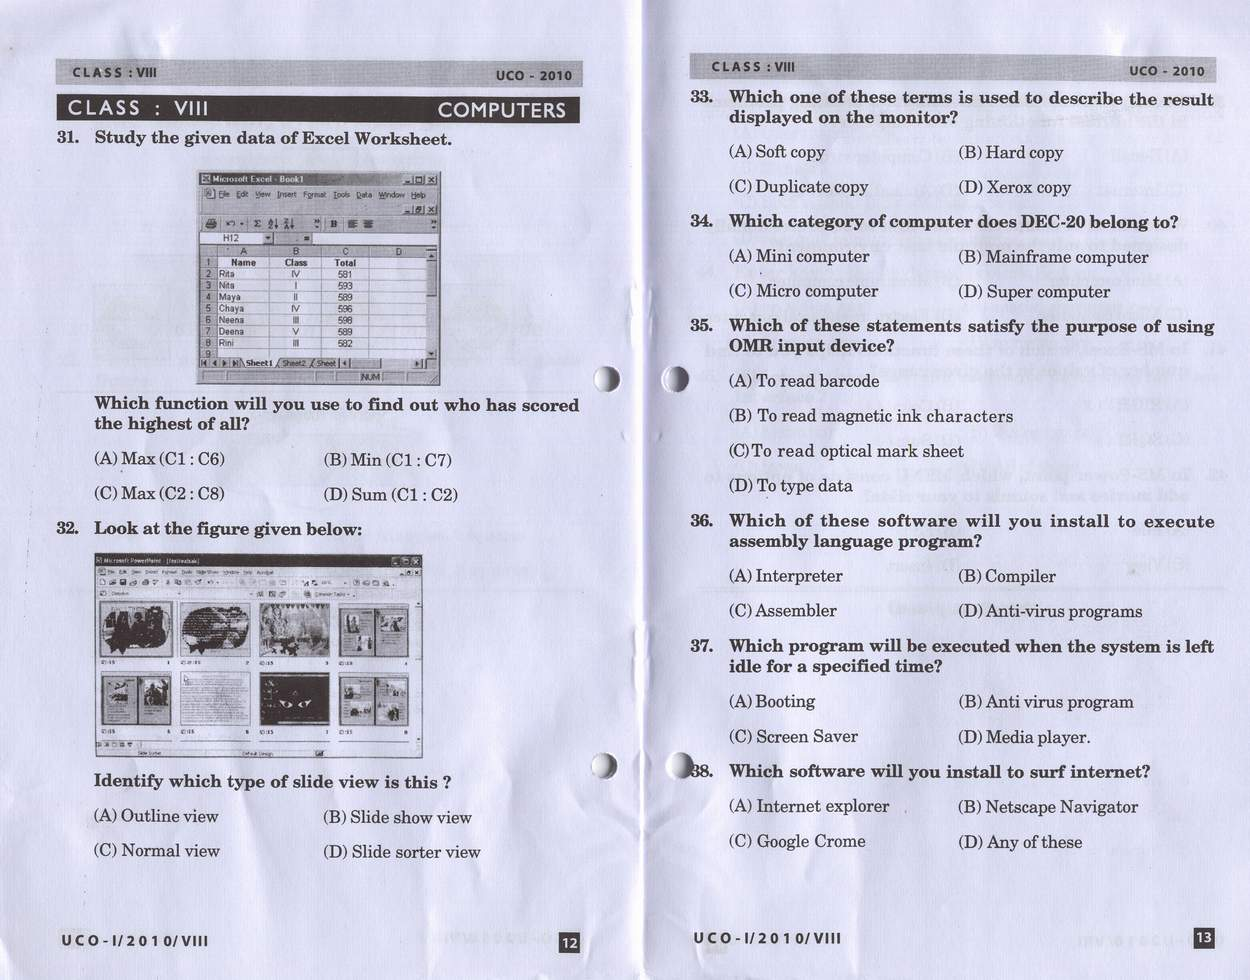 Cbse uco 2010 class viii unified cyber olympiad computer 08 unified cyber olympiaduco 2010 computer science paper for class viii download malvernweather Image collections